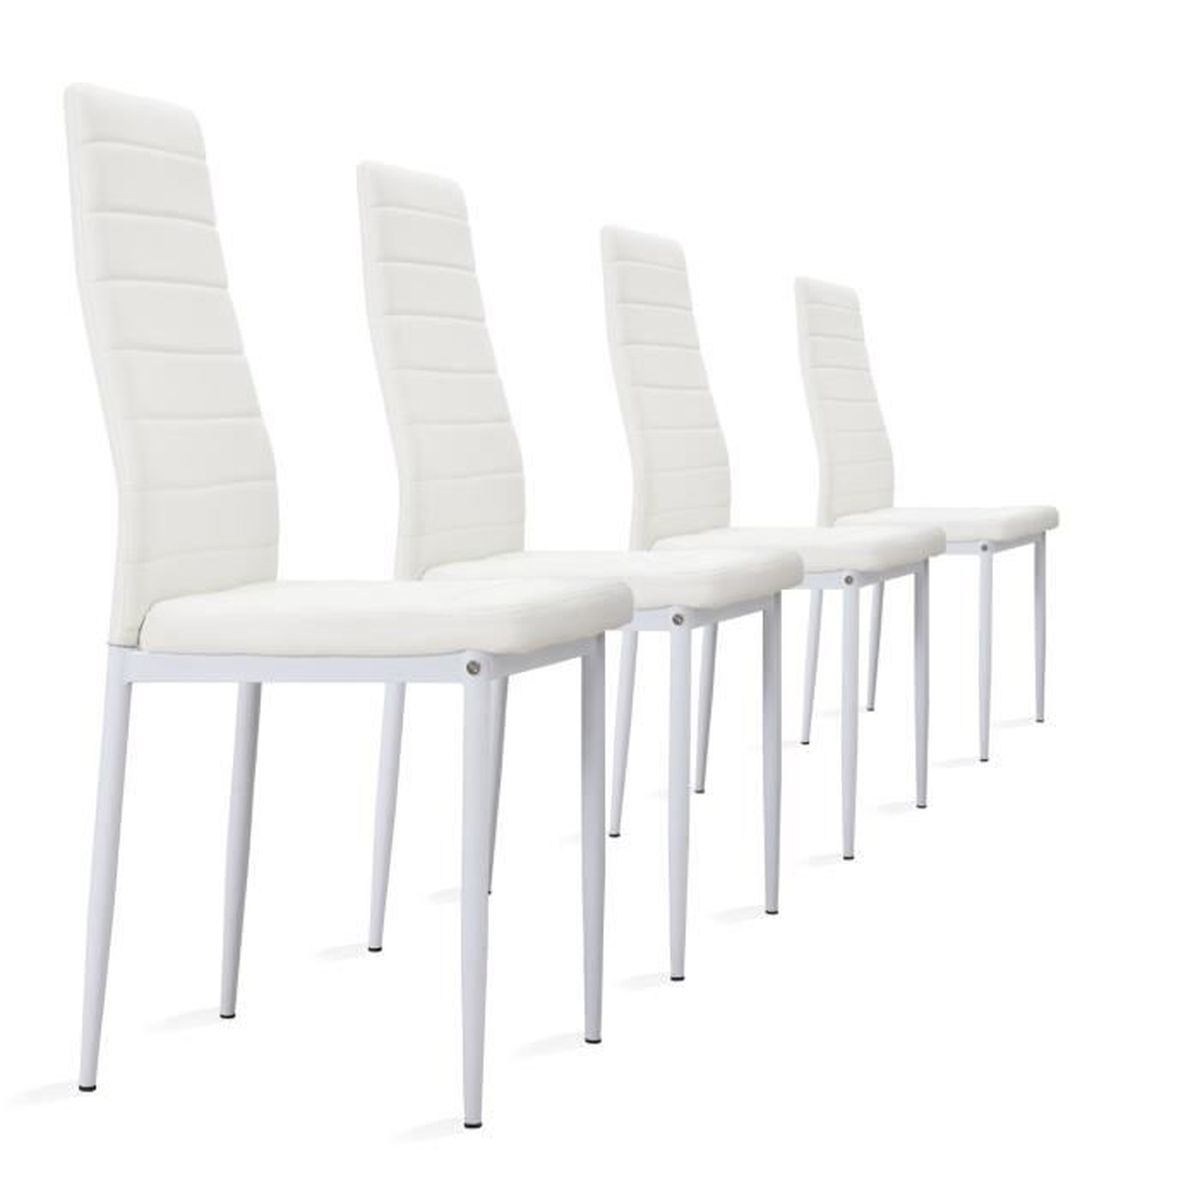 lot de 4 chaises blanches en simili cuir achat vente chaise cdiscount. Black Bedroom Furniture Sets. Home Design Ideas